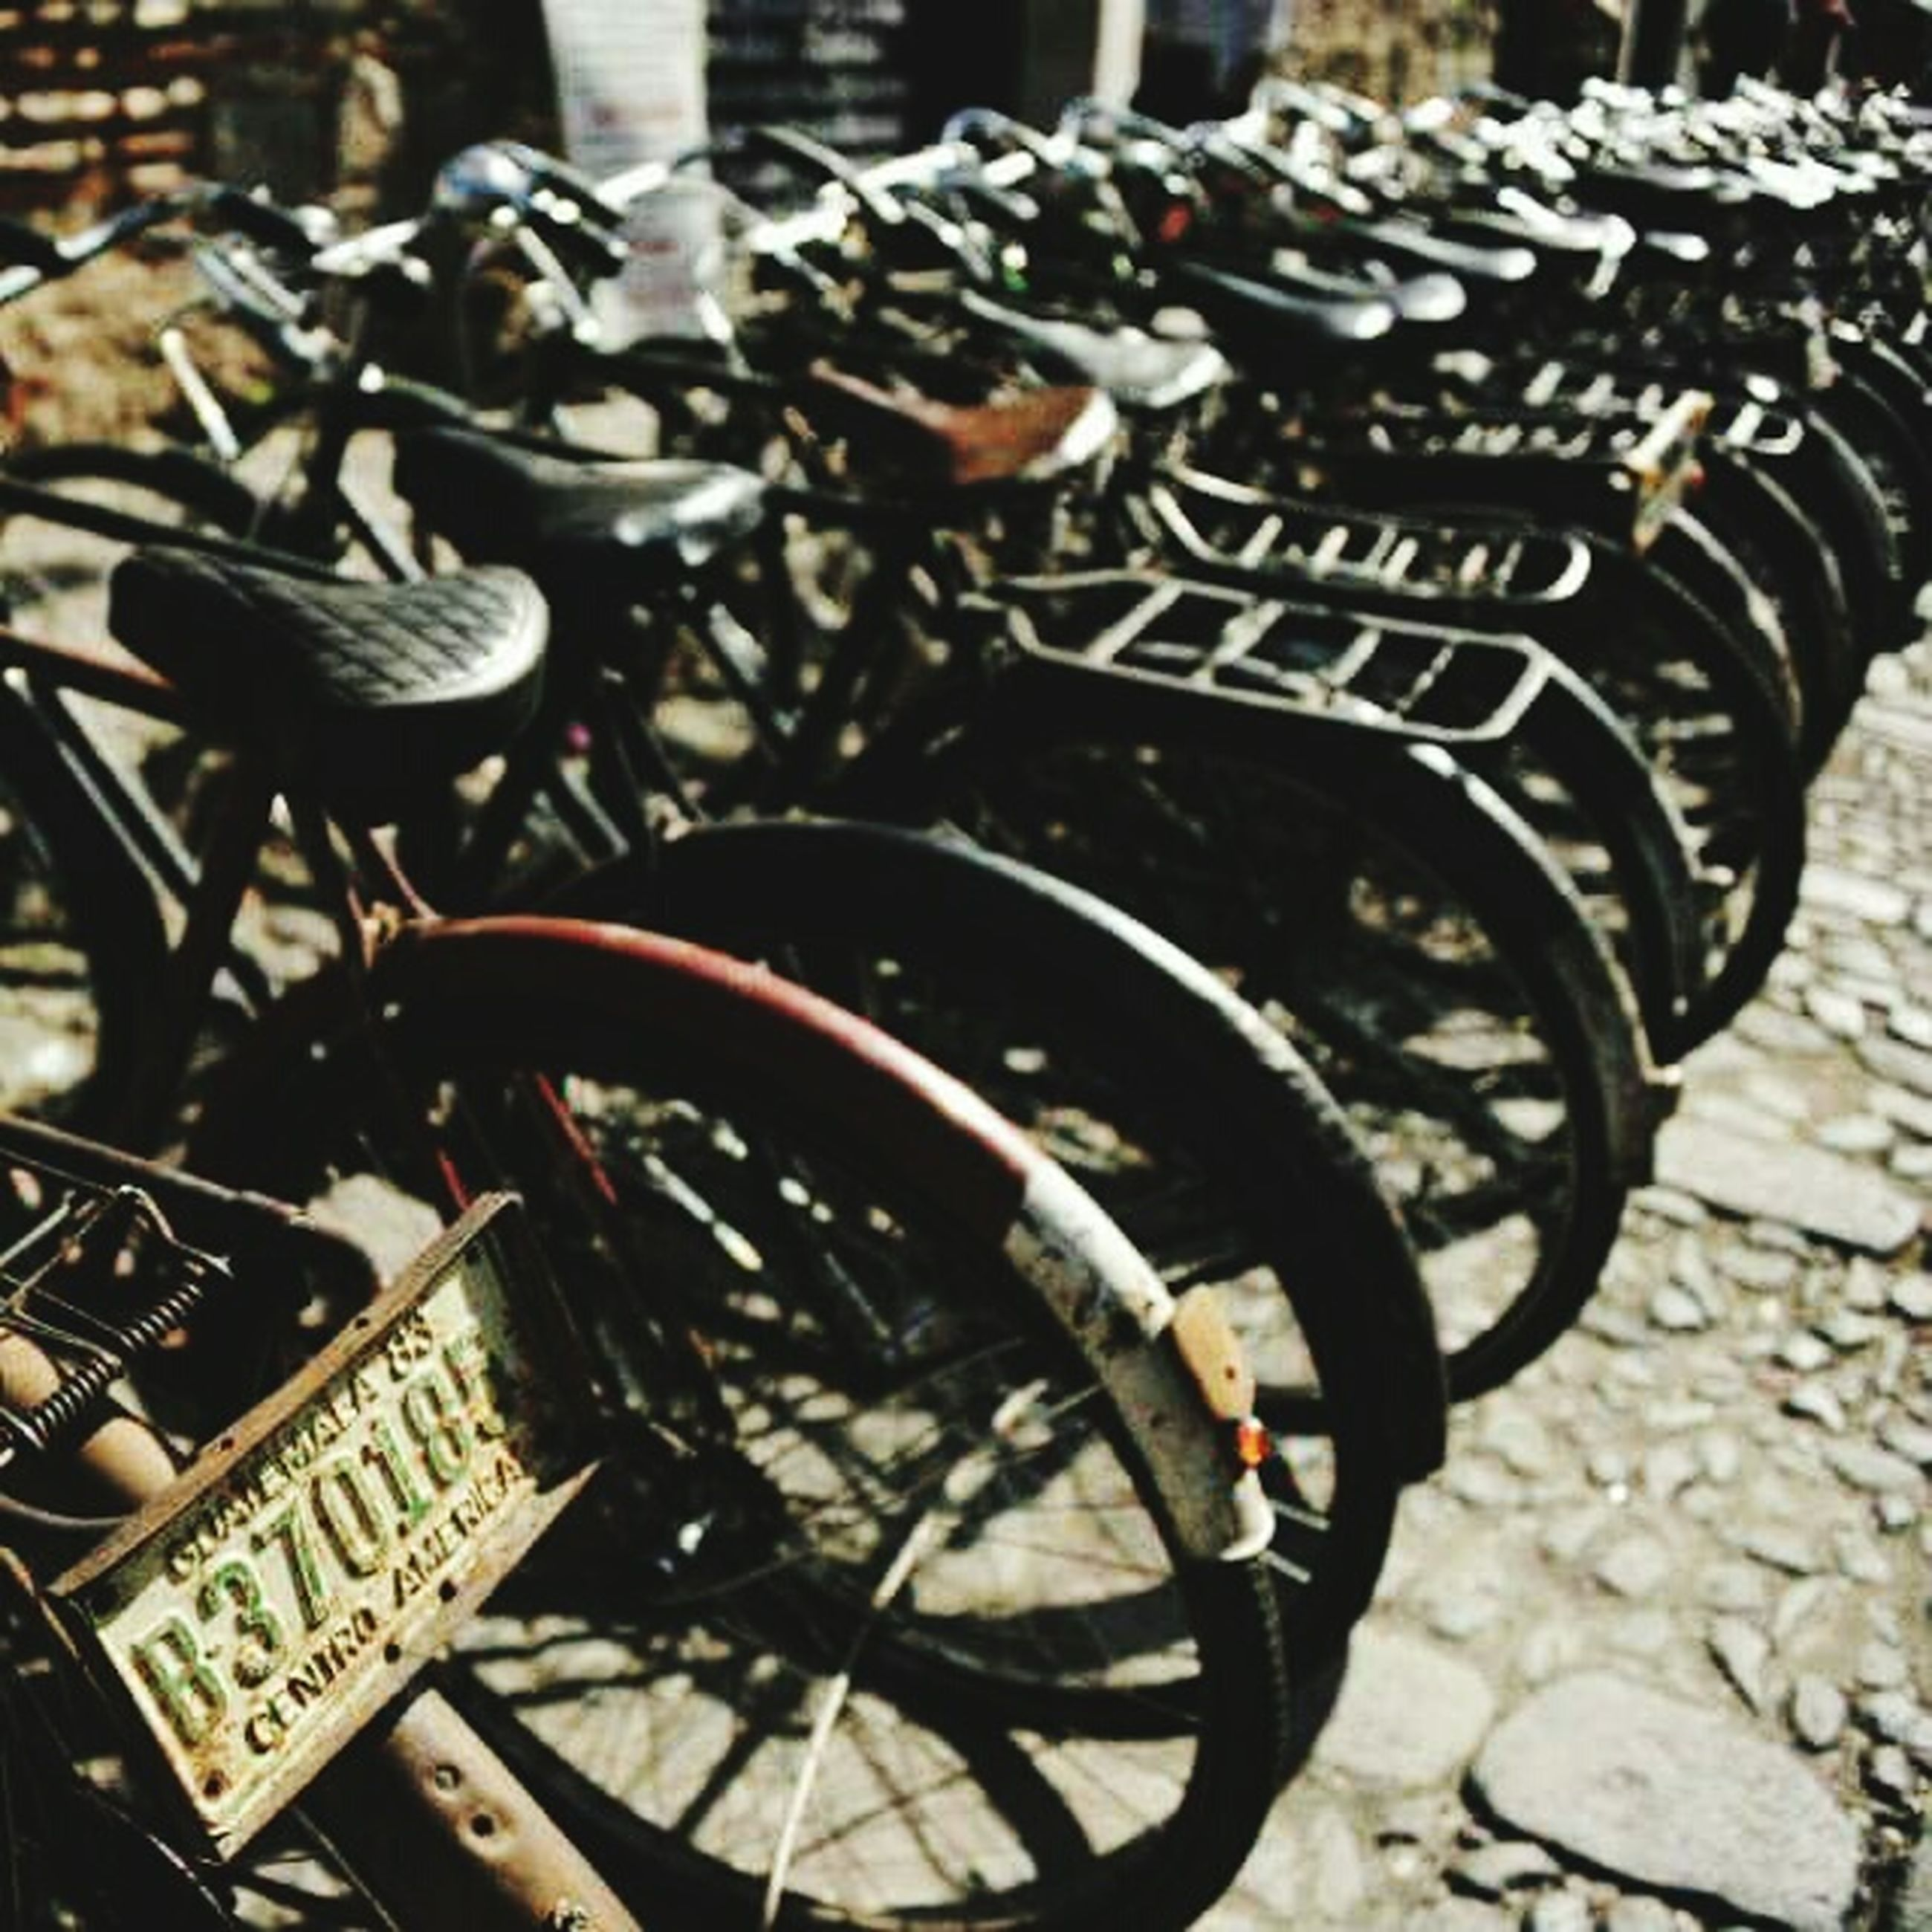 metal, close-up, bicycle, metallic, focus on foreground, high angle view, still life, transportation, old-fashioned, no people, land vehicle, day, stationary, outdoors, equipment, old, part of, retro styled, wheel, parked